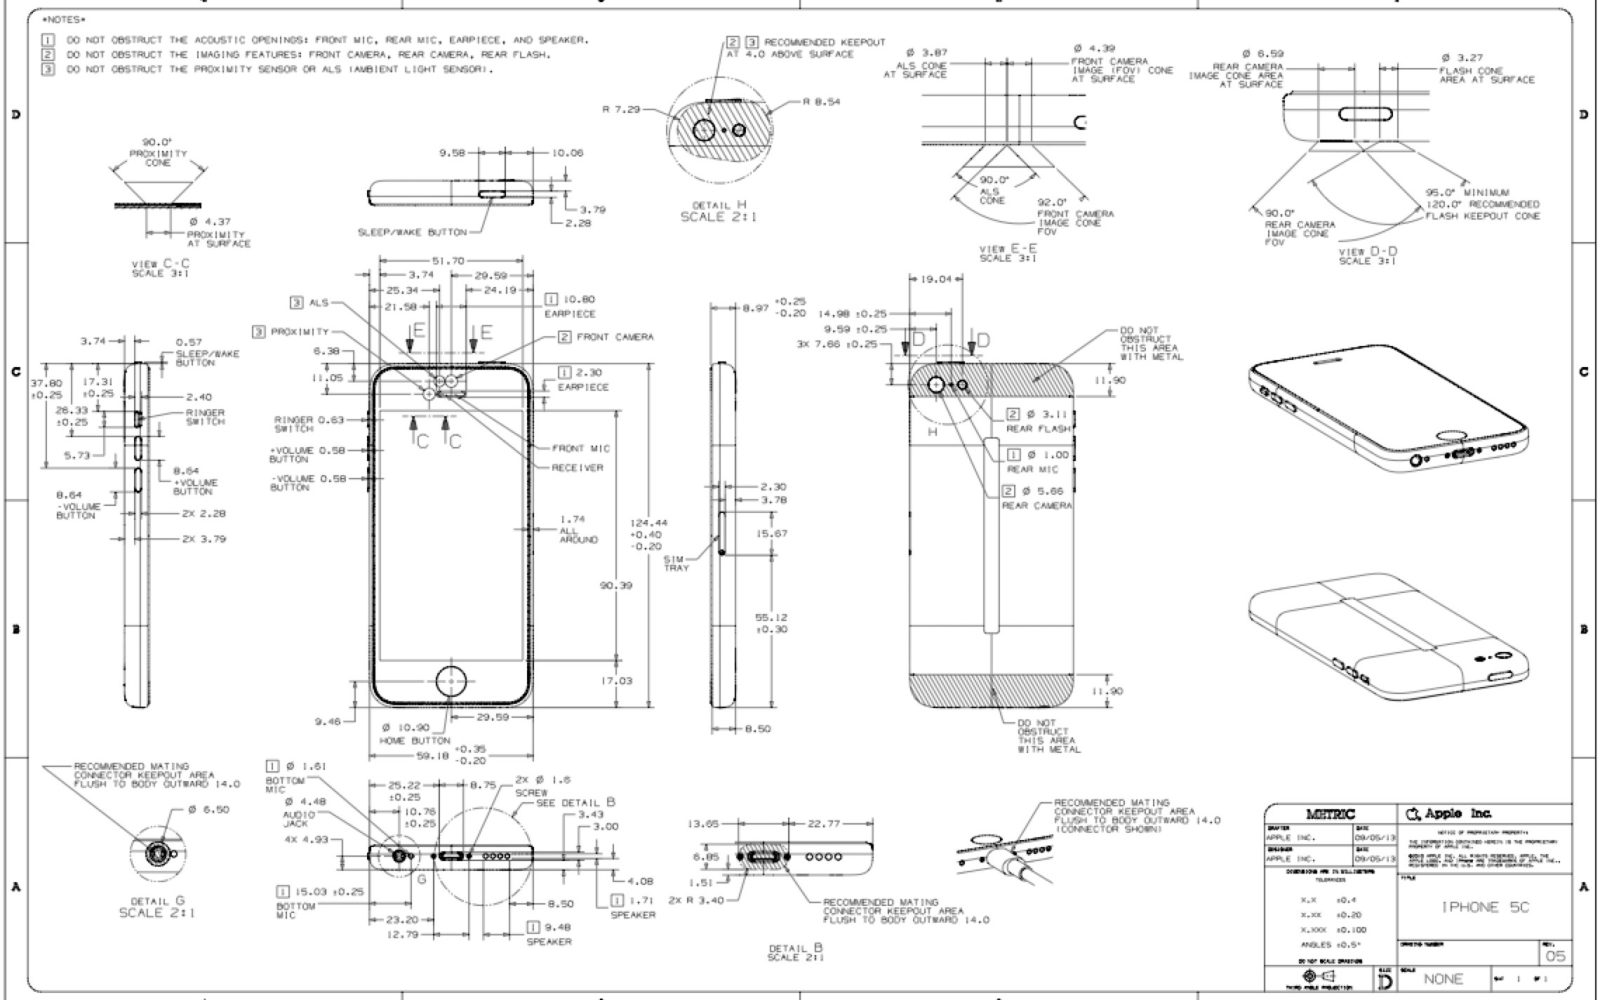 Designing an iPhone 5c/5s case? Here are your official Apple ... on iphone 4s schematic, iphone hardware diagram, iphone 6 schematics, iphone block diagram, iphone wiring diagram, iphone architecture diagram, iphone cad diagram, iphone exploded diagram, iphone 5s schematic, iphone 5s diagram, iphone wire diagram, iphone cable diagram, take apart iphone 4 diagram, iphone 4 inside diagram, iphone assembly diagram, iphone battery diagram, iphone design diagram, iphone 6 button diagram, iphone pinout diagram, iphone screen shot,